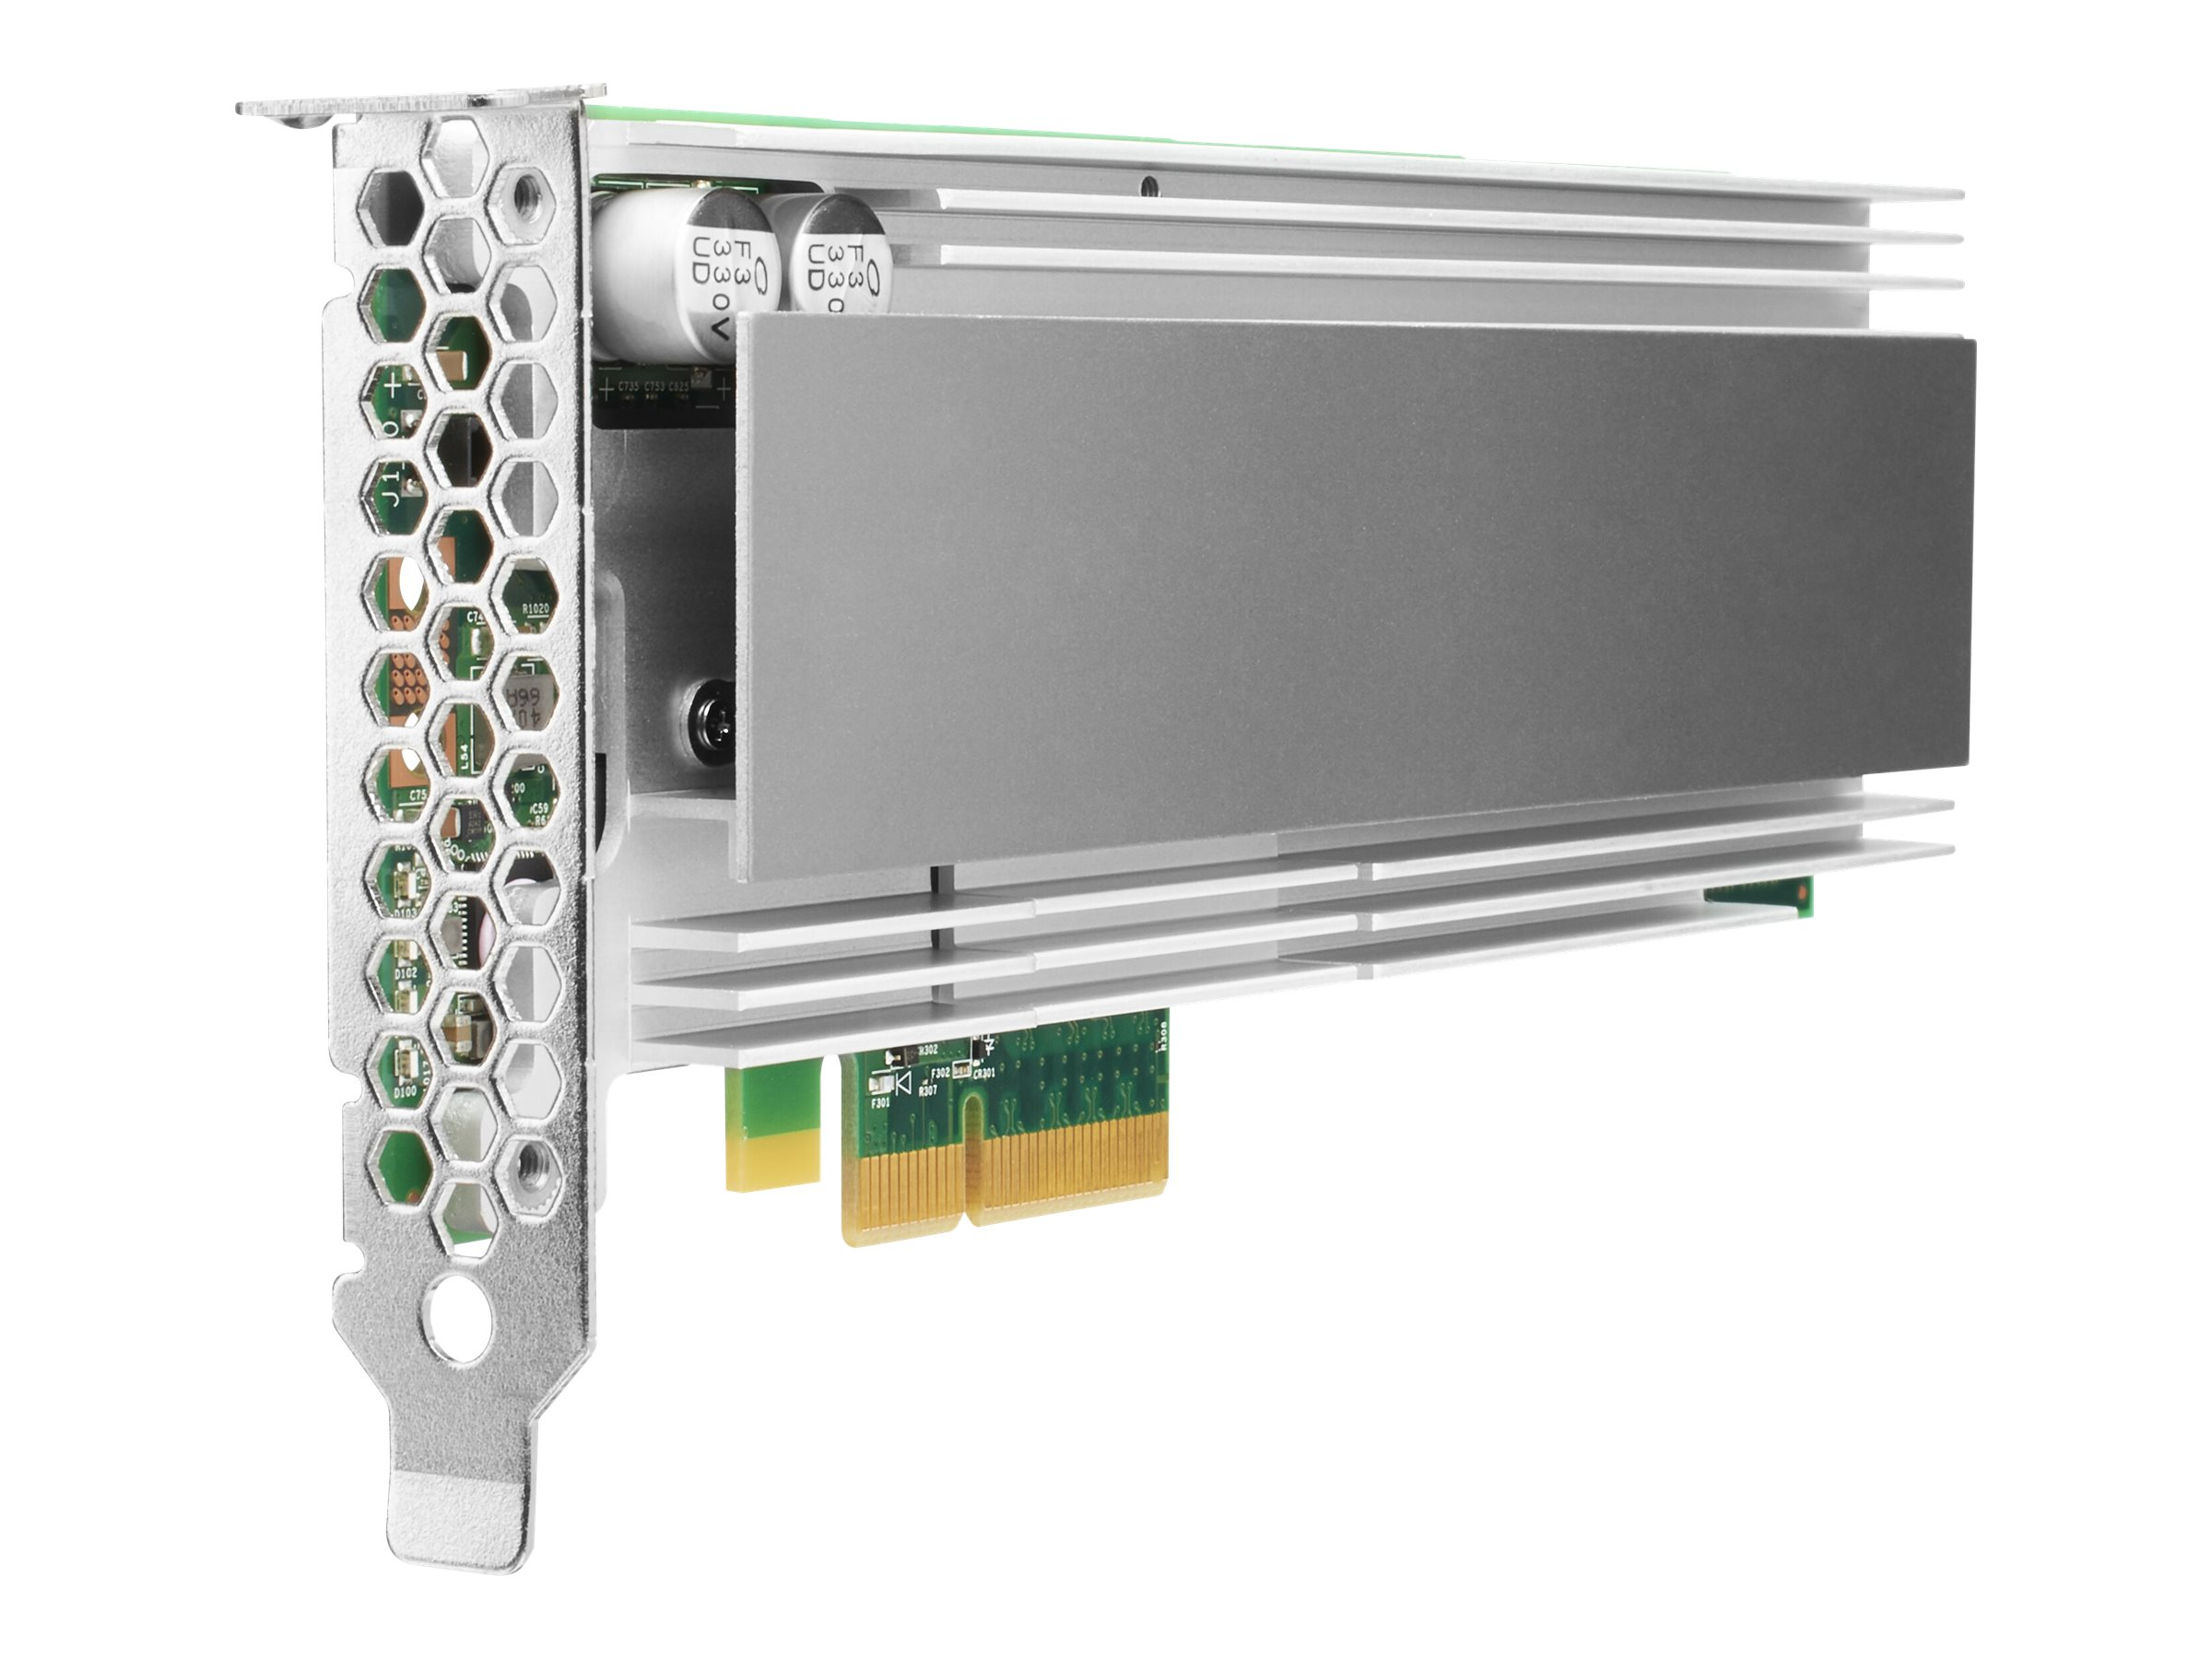 HPE Mixed Use - solid state drive - 3.2 TB - PCI Express x8 (NVMe) -